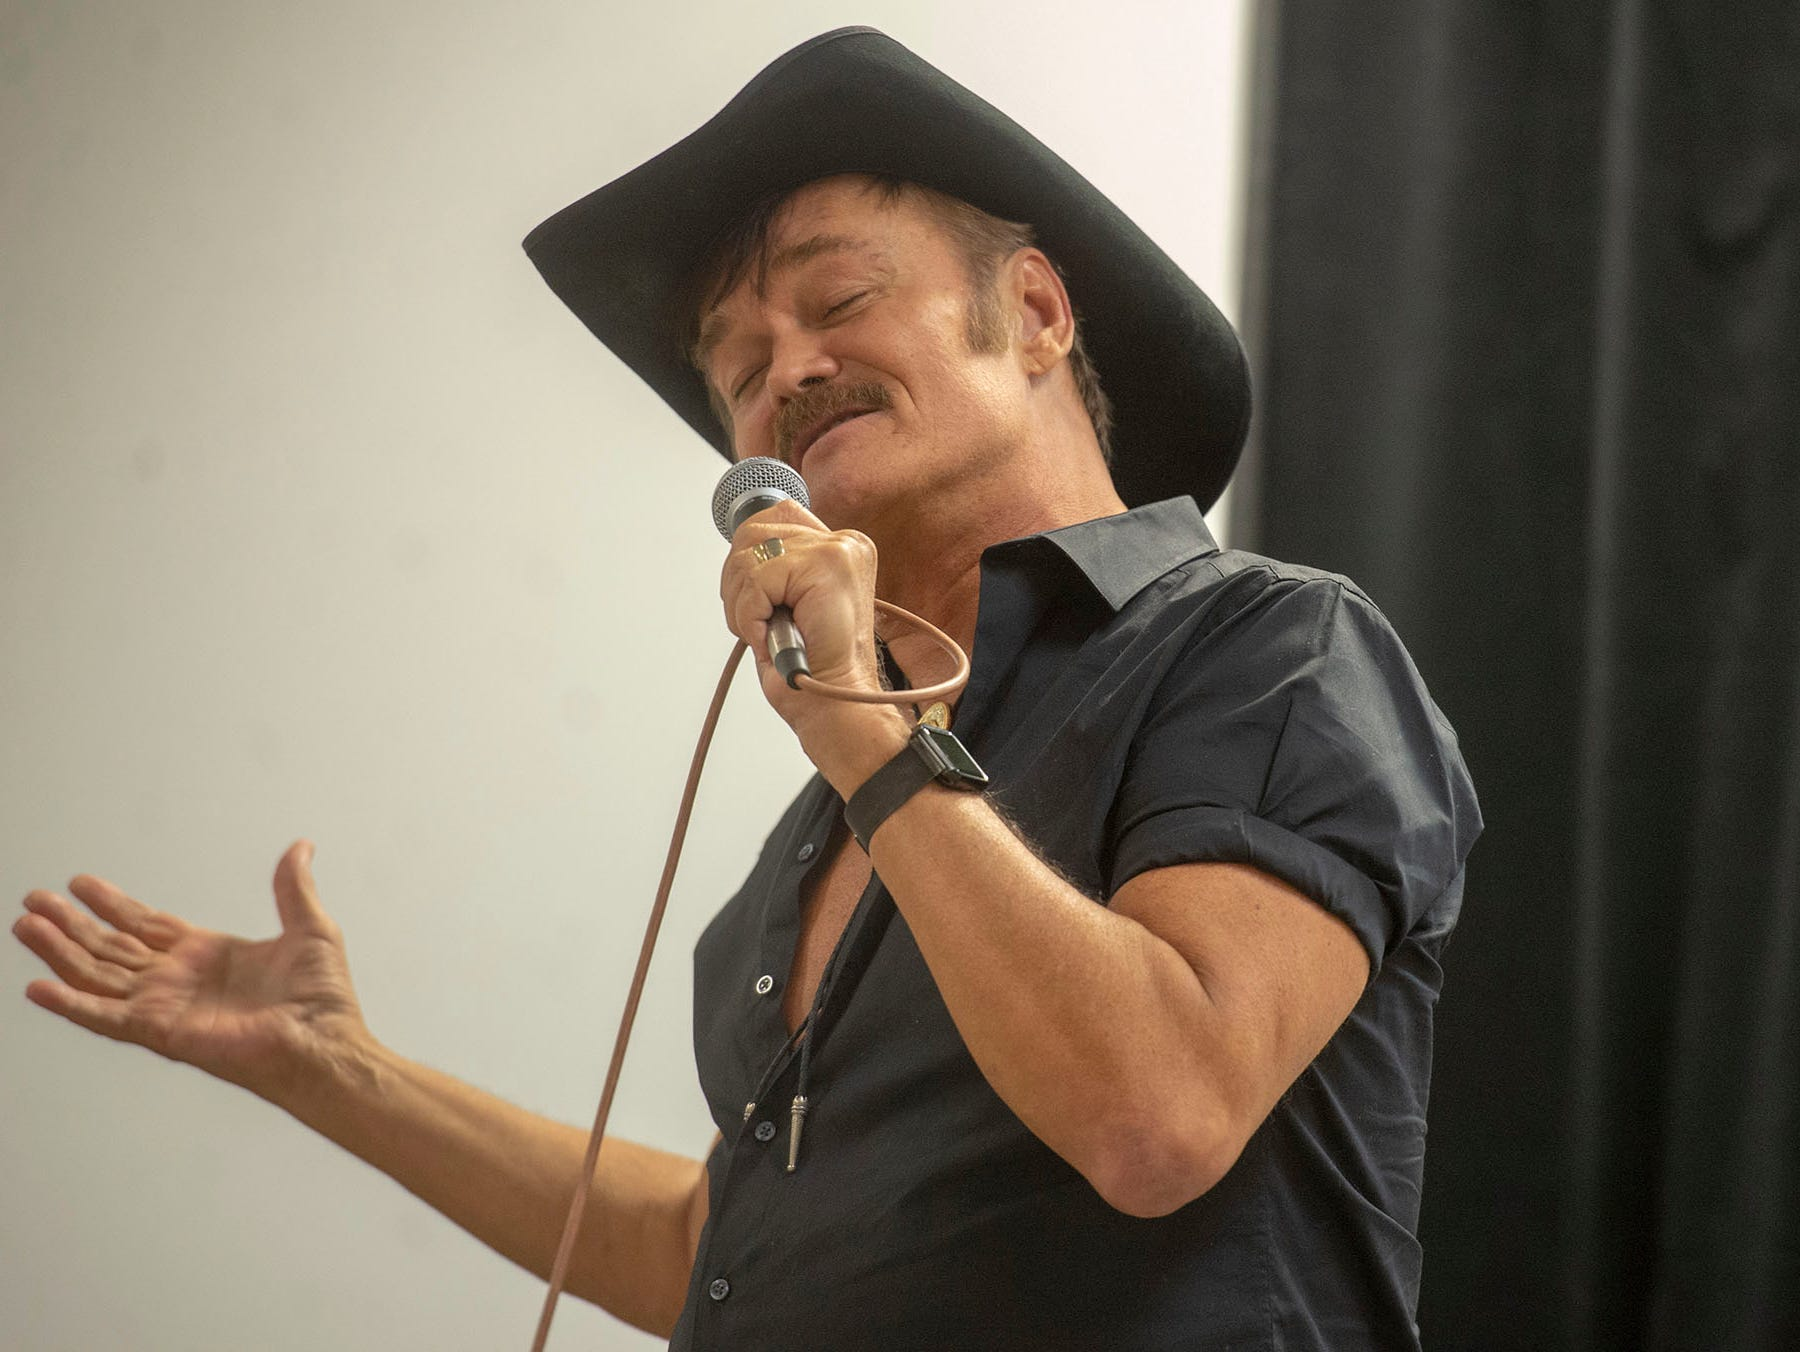 Randy Jones sings one of his own songs during a performance for vendors and guest at the White Rose Comic Con, which runs through Sunday, March 24, 2019 at Utz Arena of the York Fairgrounds.